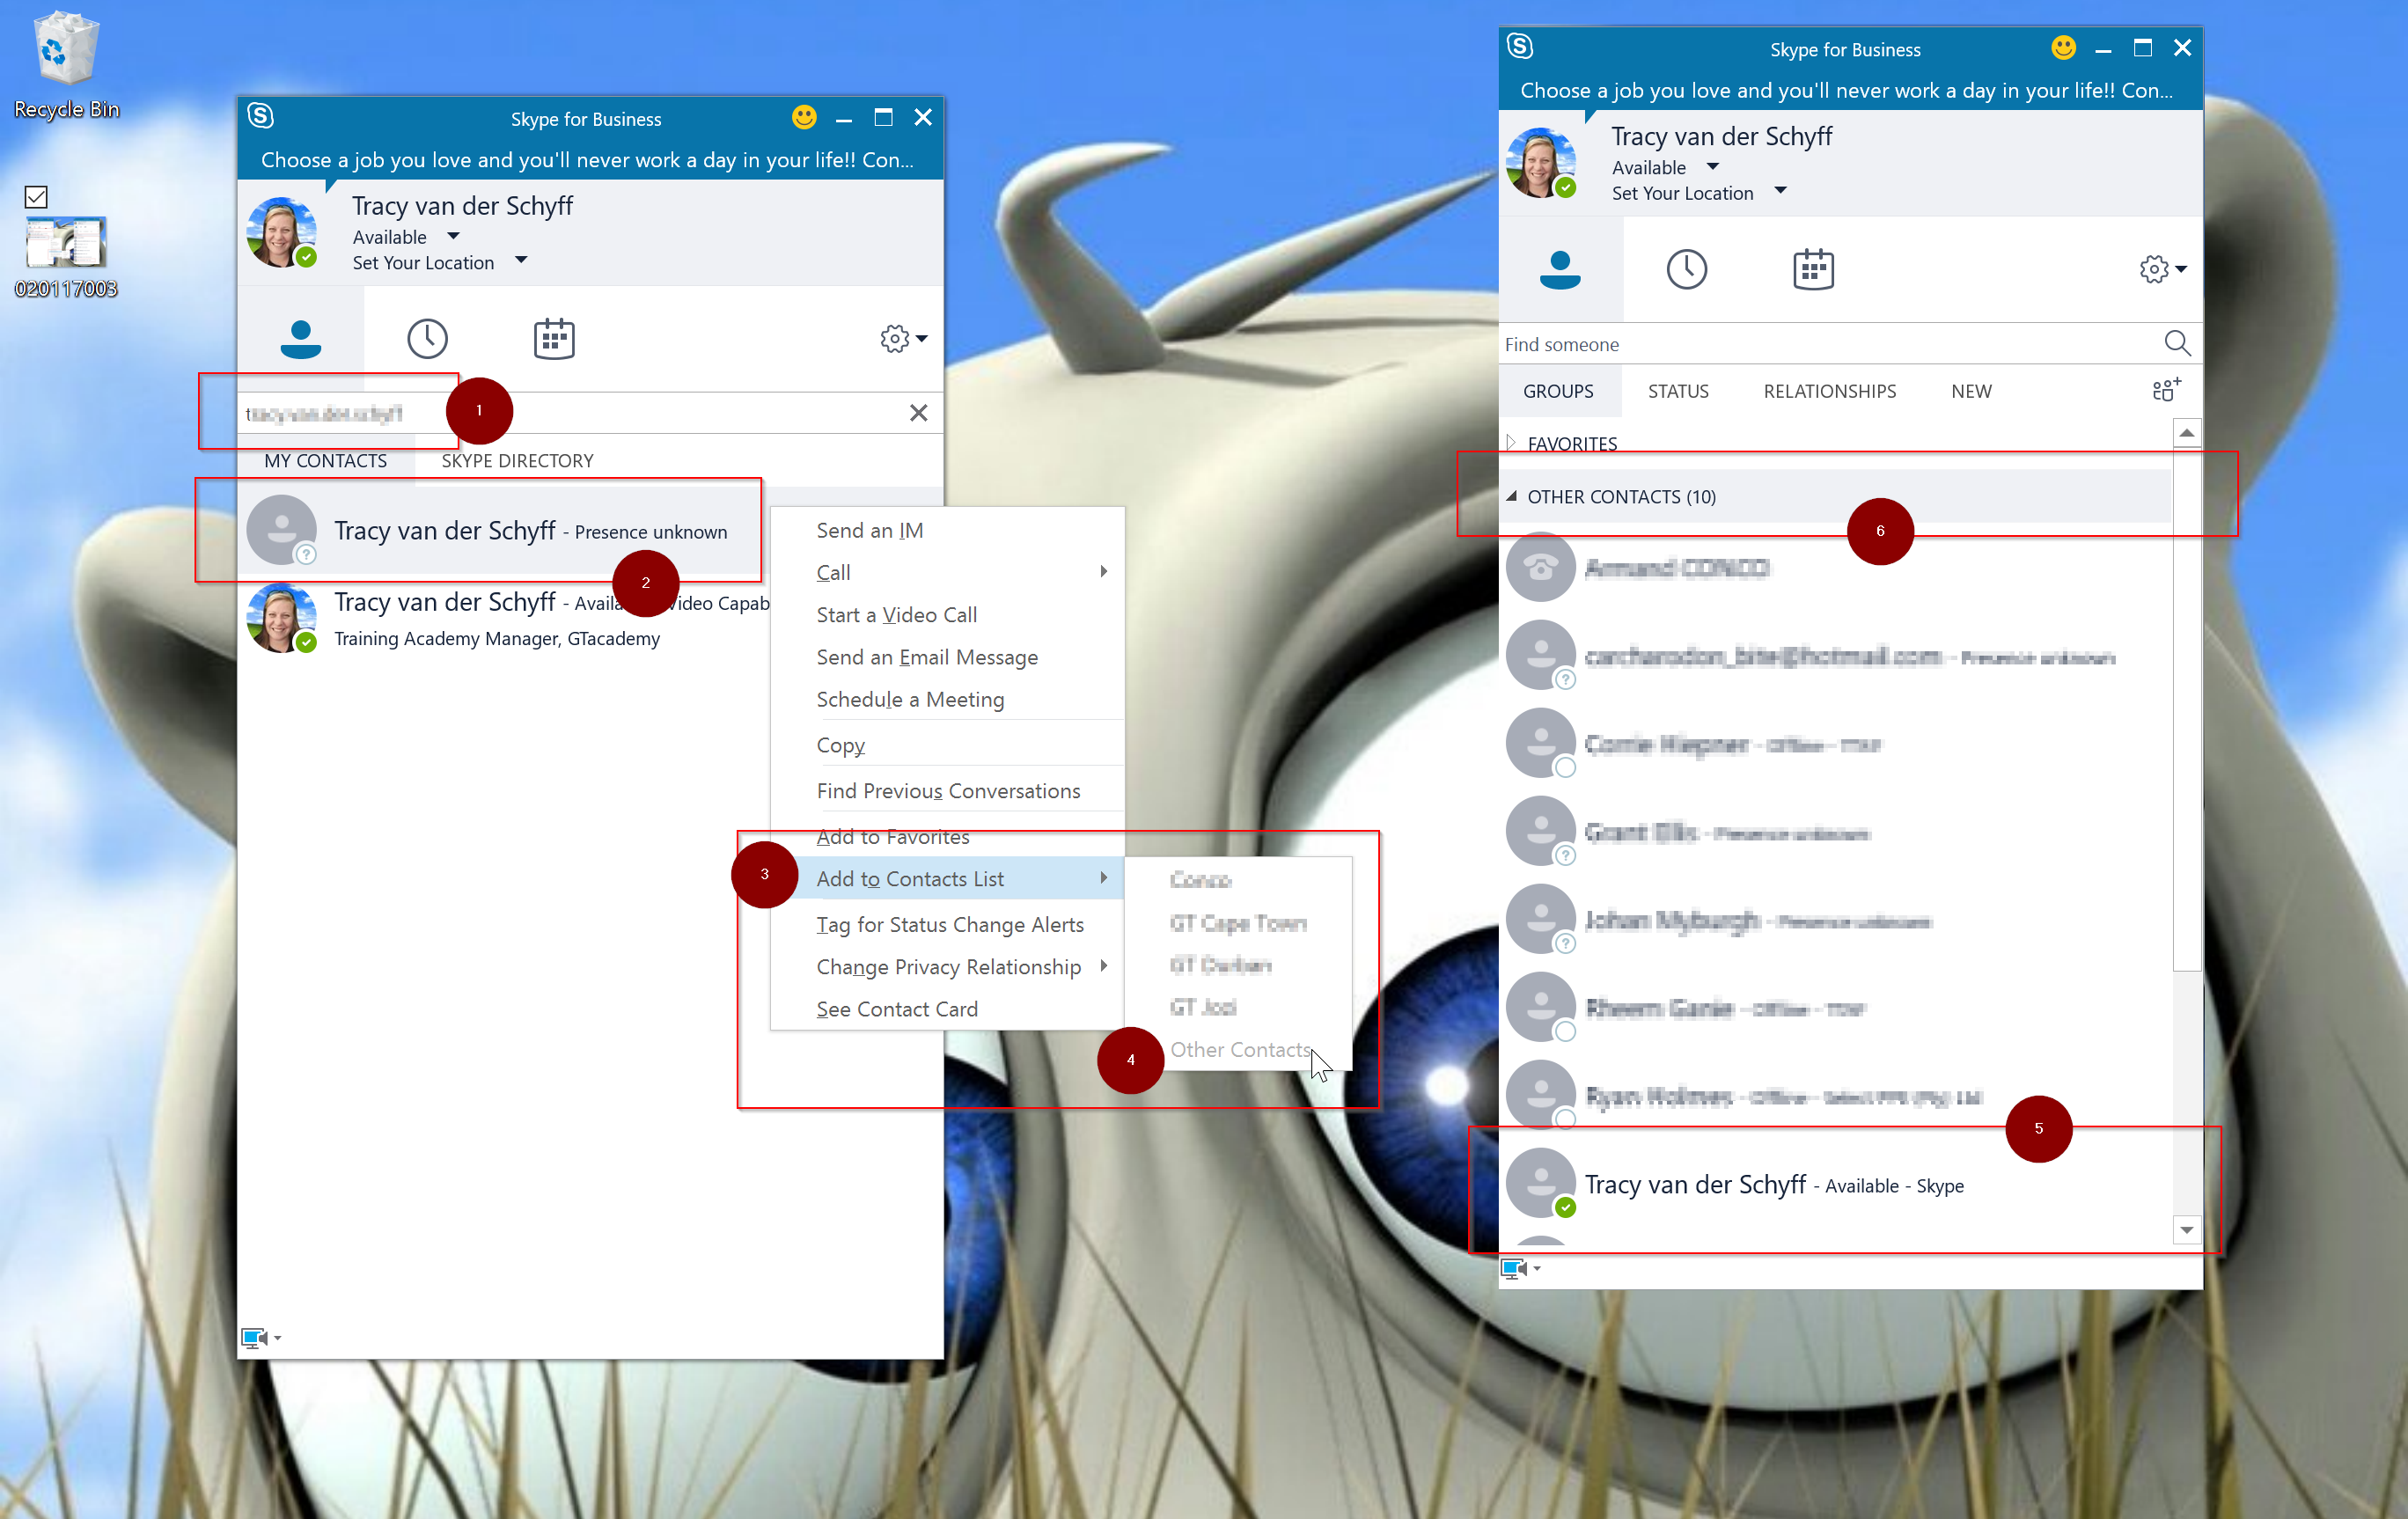 Day 308 – Finding and Adding Contacts in Skype for Business